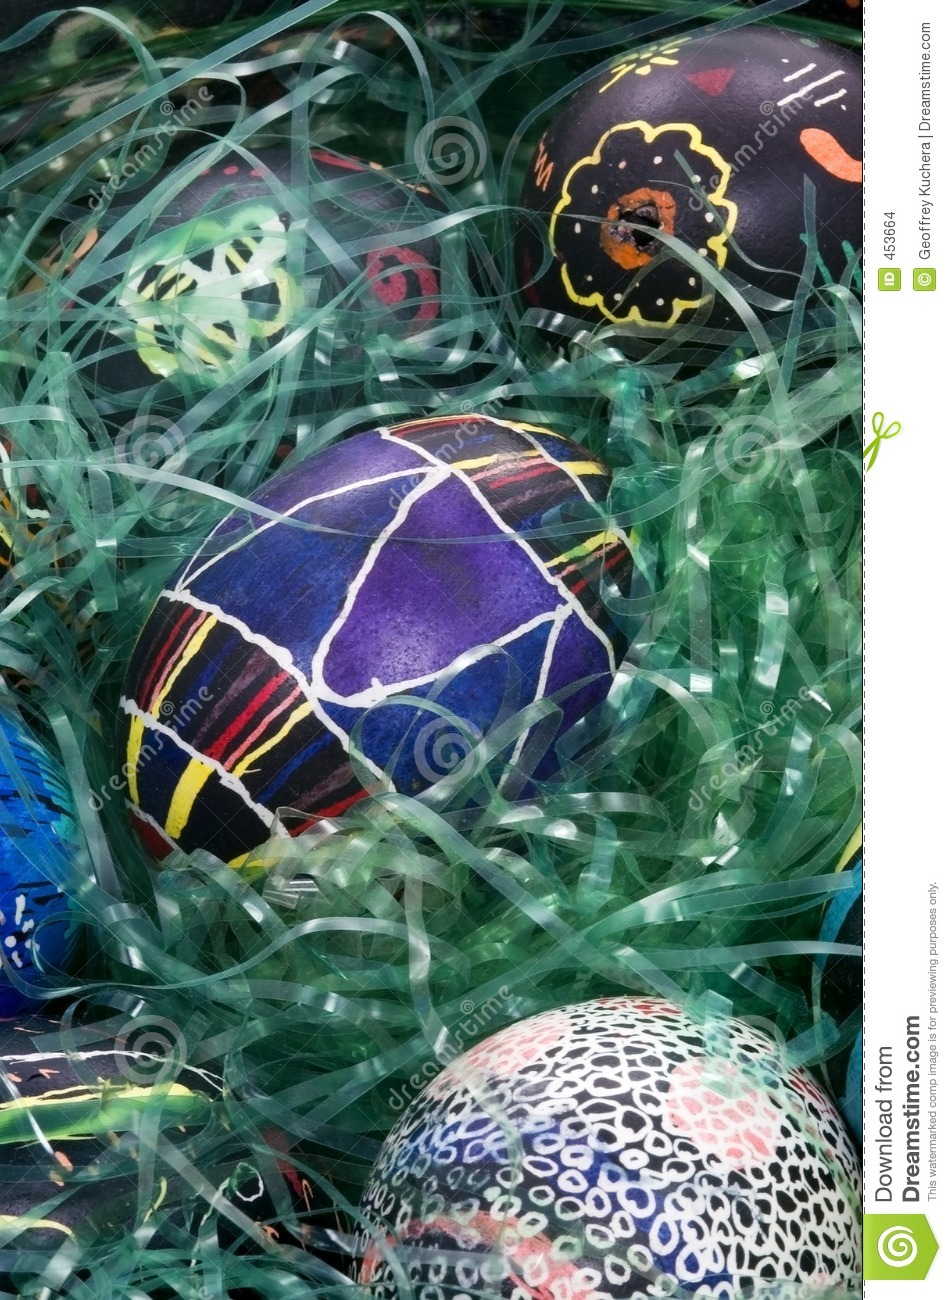 Colorful Easter Eggs in Grass - Geometic Design in Middle